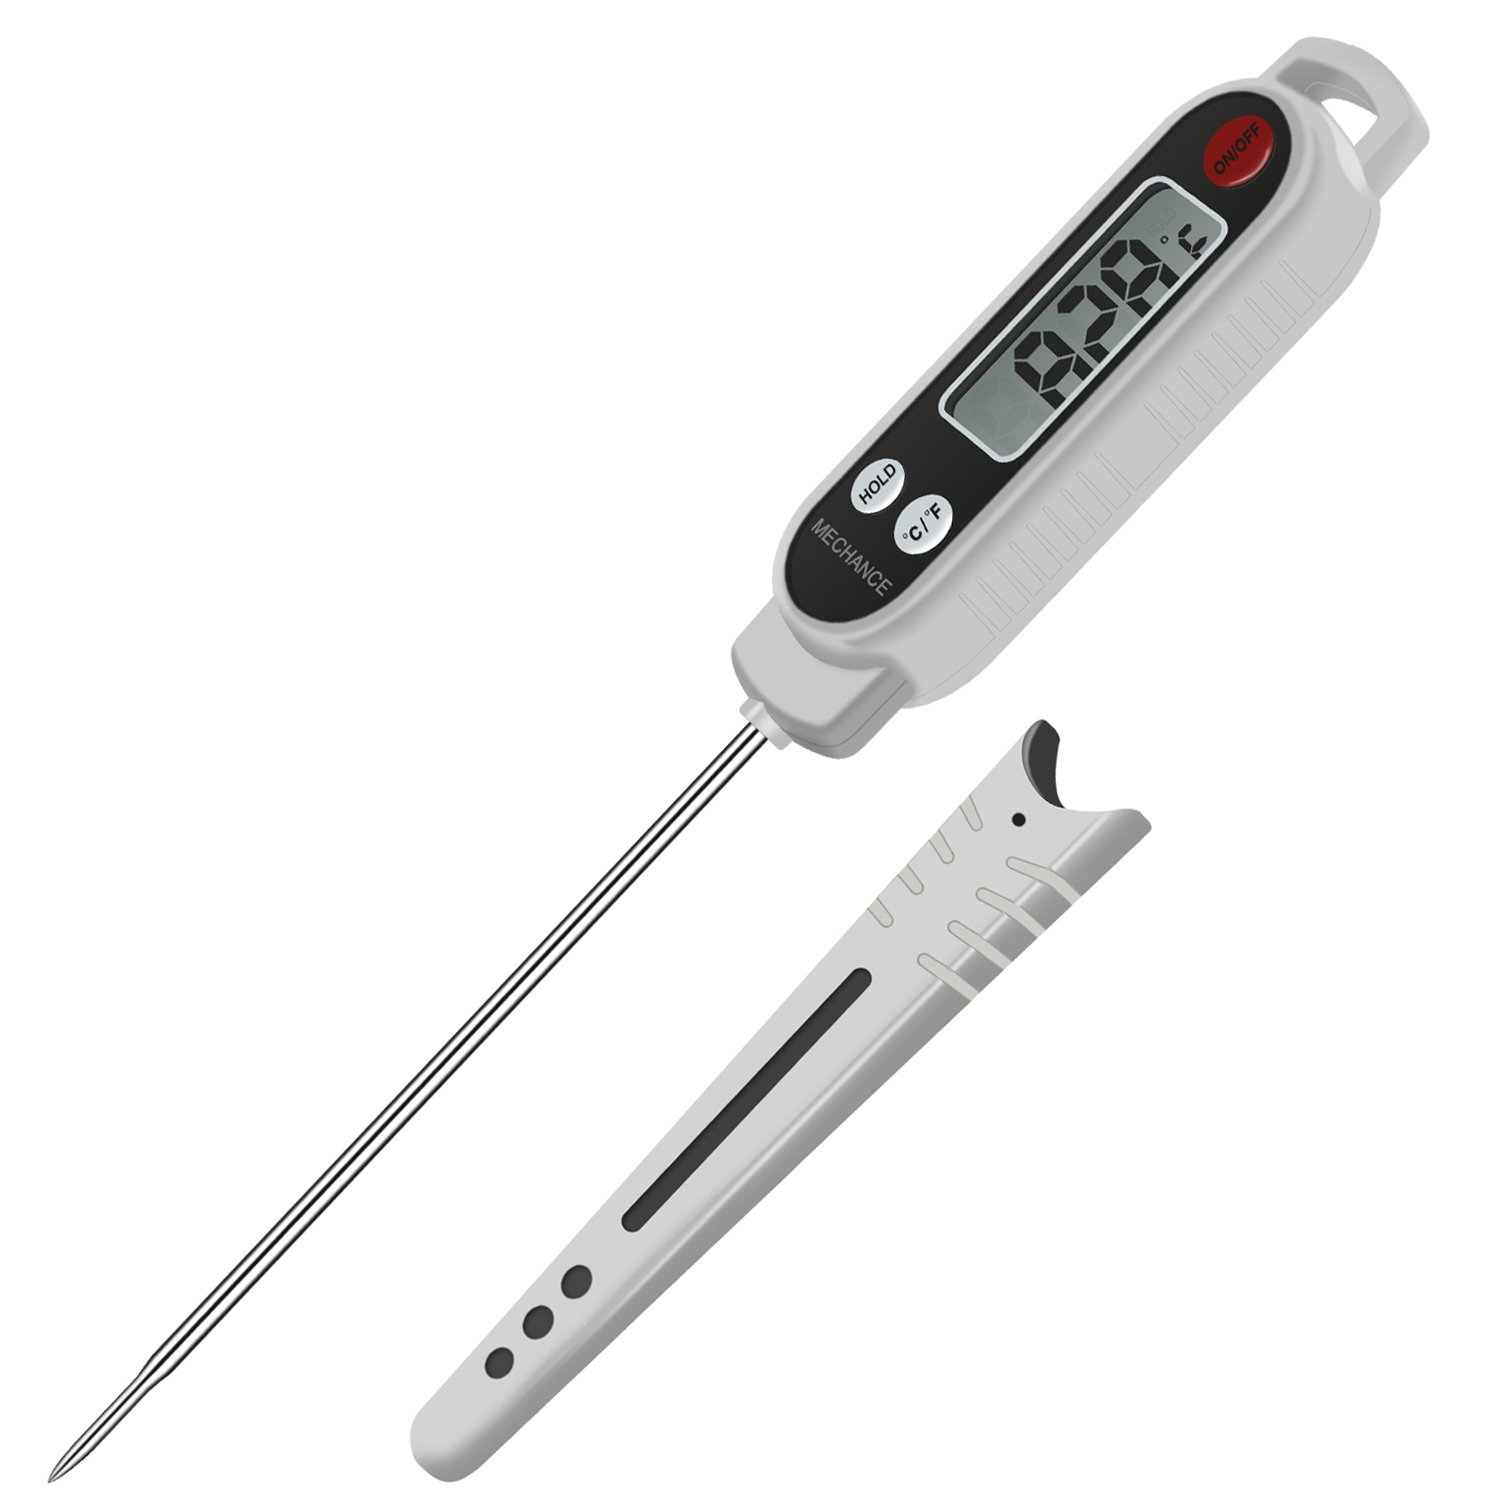 Meat Thermometer, Mechance Instant Read Thermometer BBQ Thermometer Grill Thermometer Food Thermometer with Long Probe for Kitchen Cooking Grilling Smoker Fry Steak Meat Candy Milk Oil Liquid